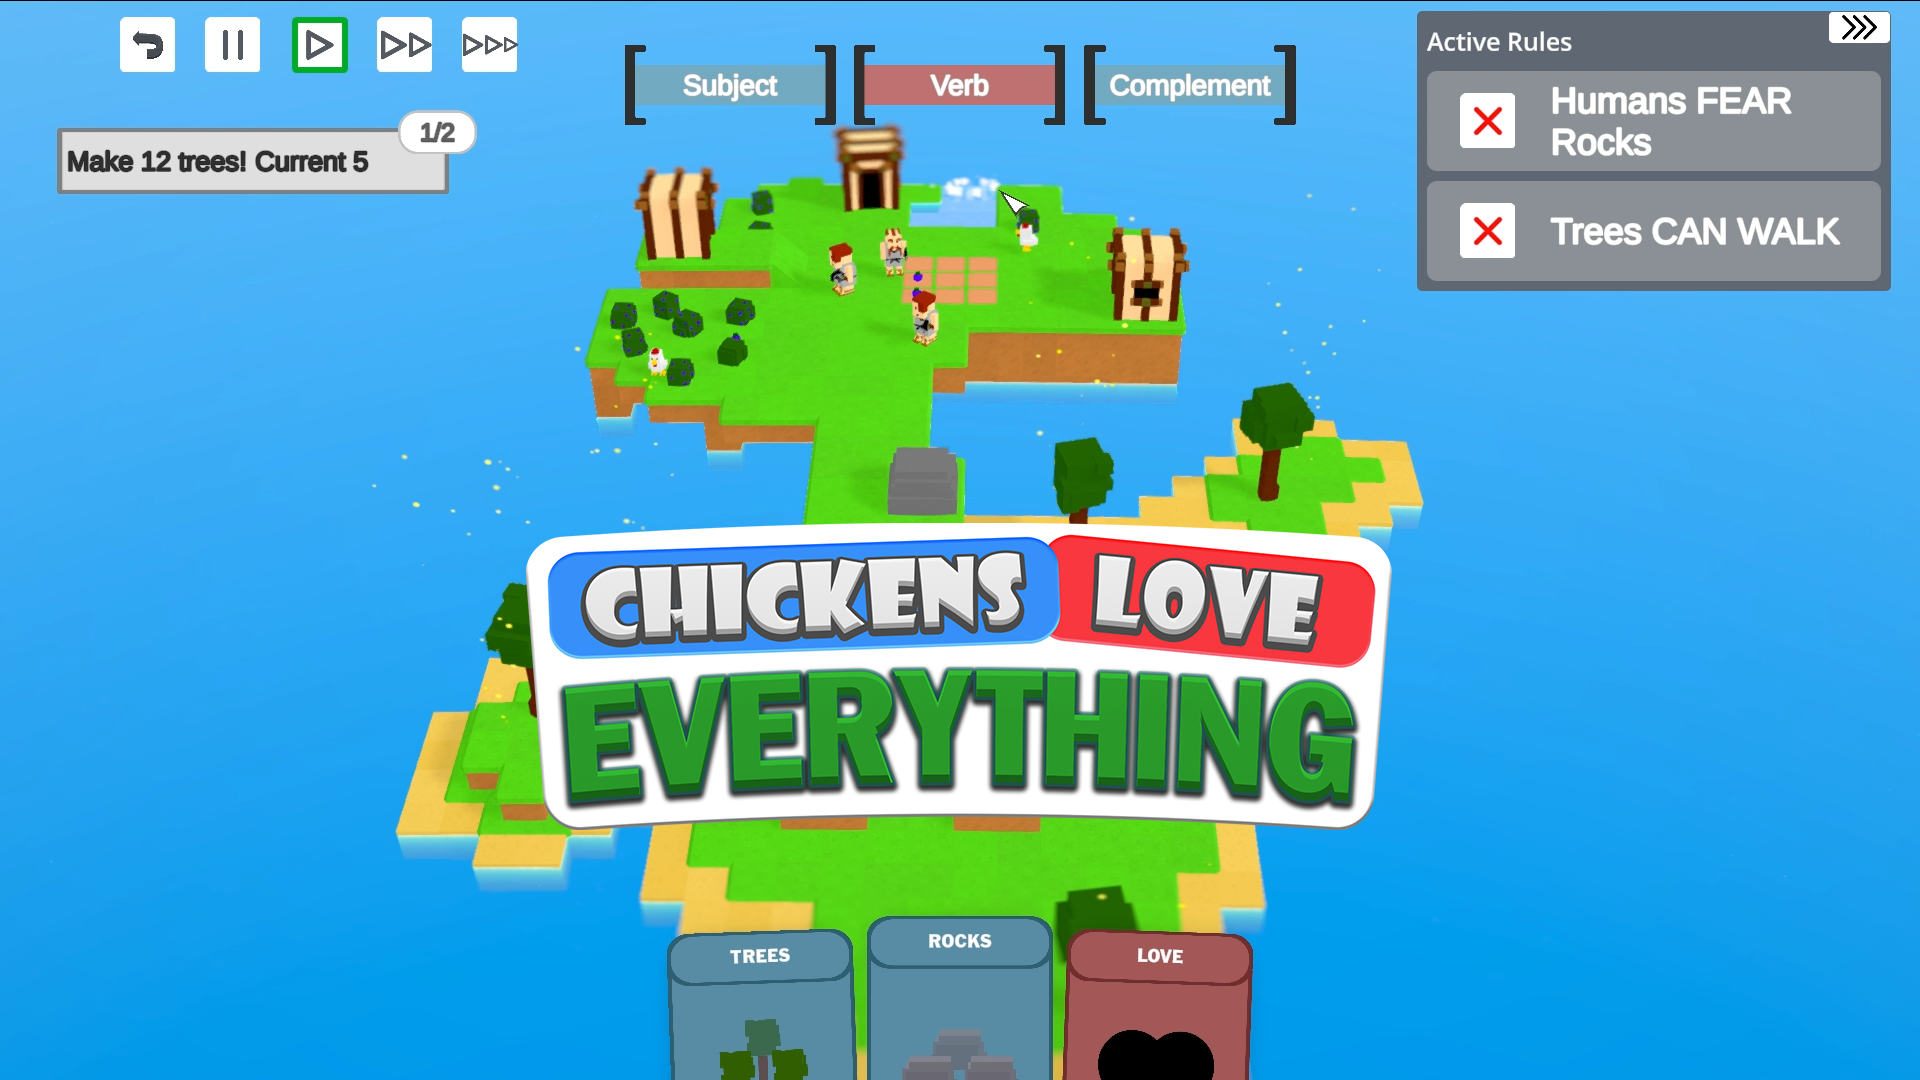 Chickens Love Everything